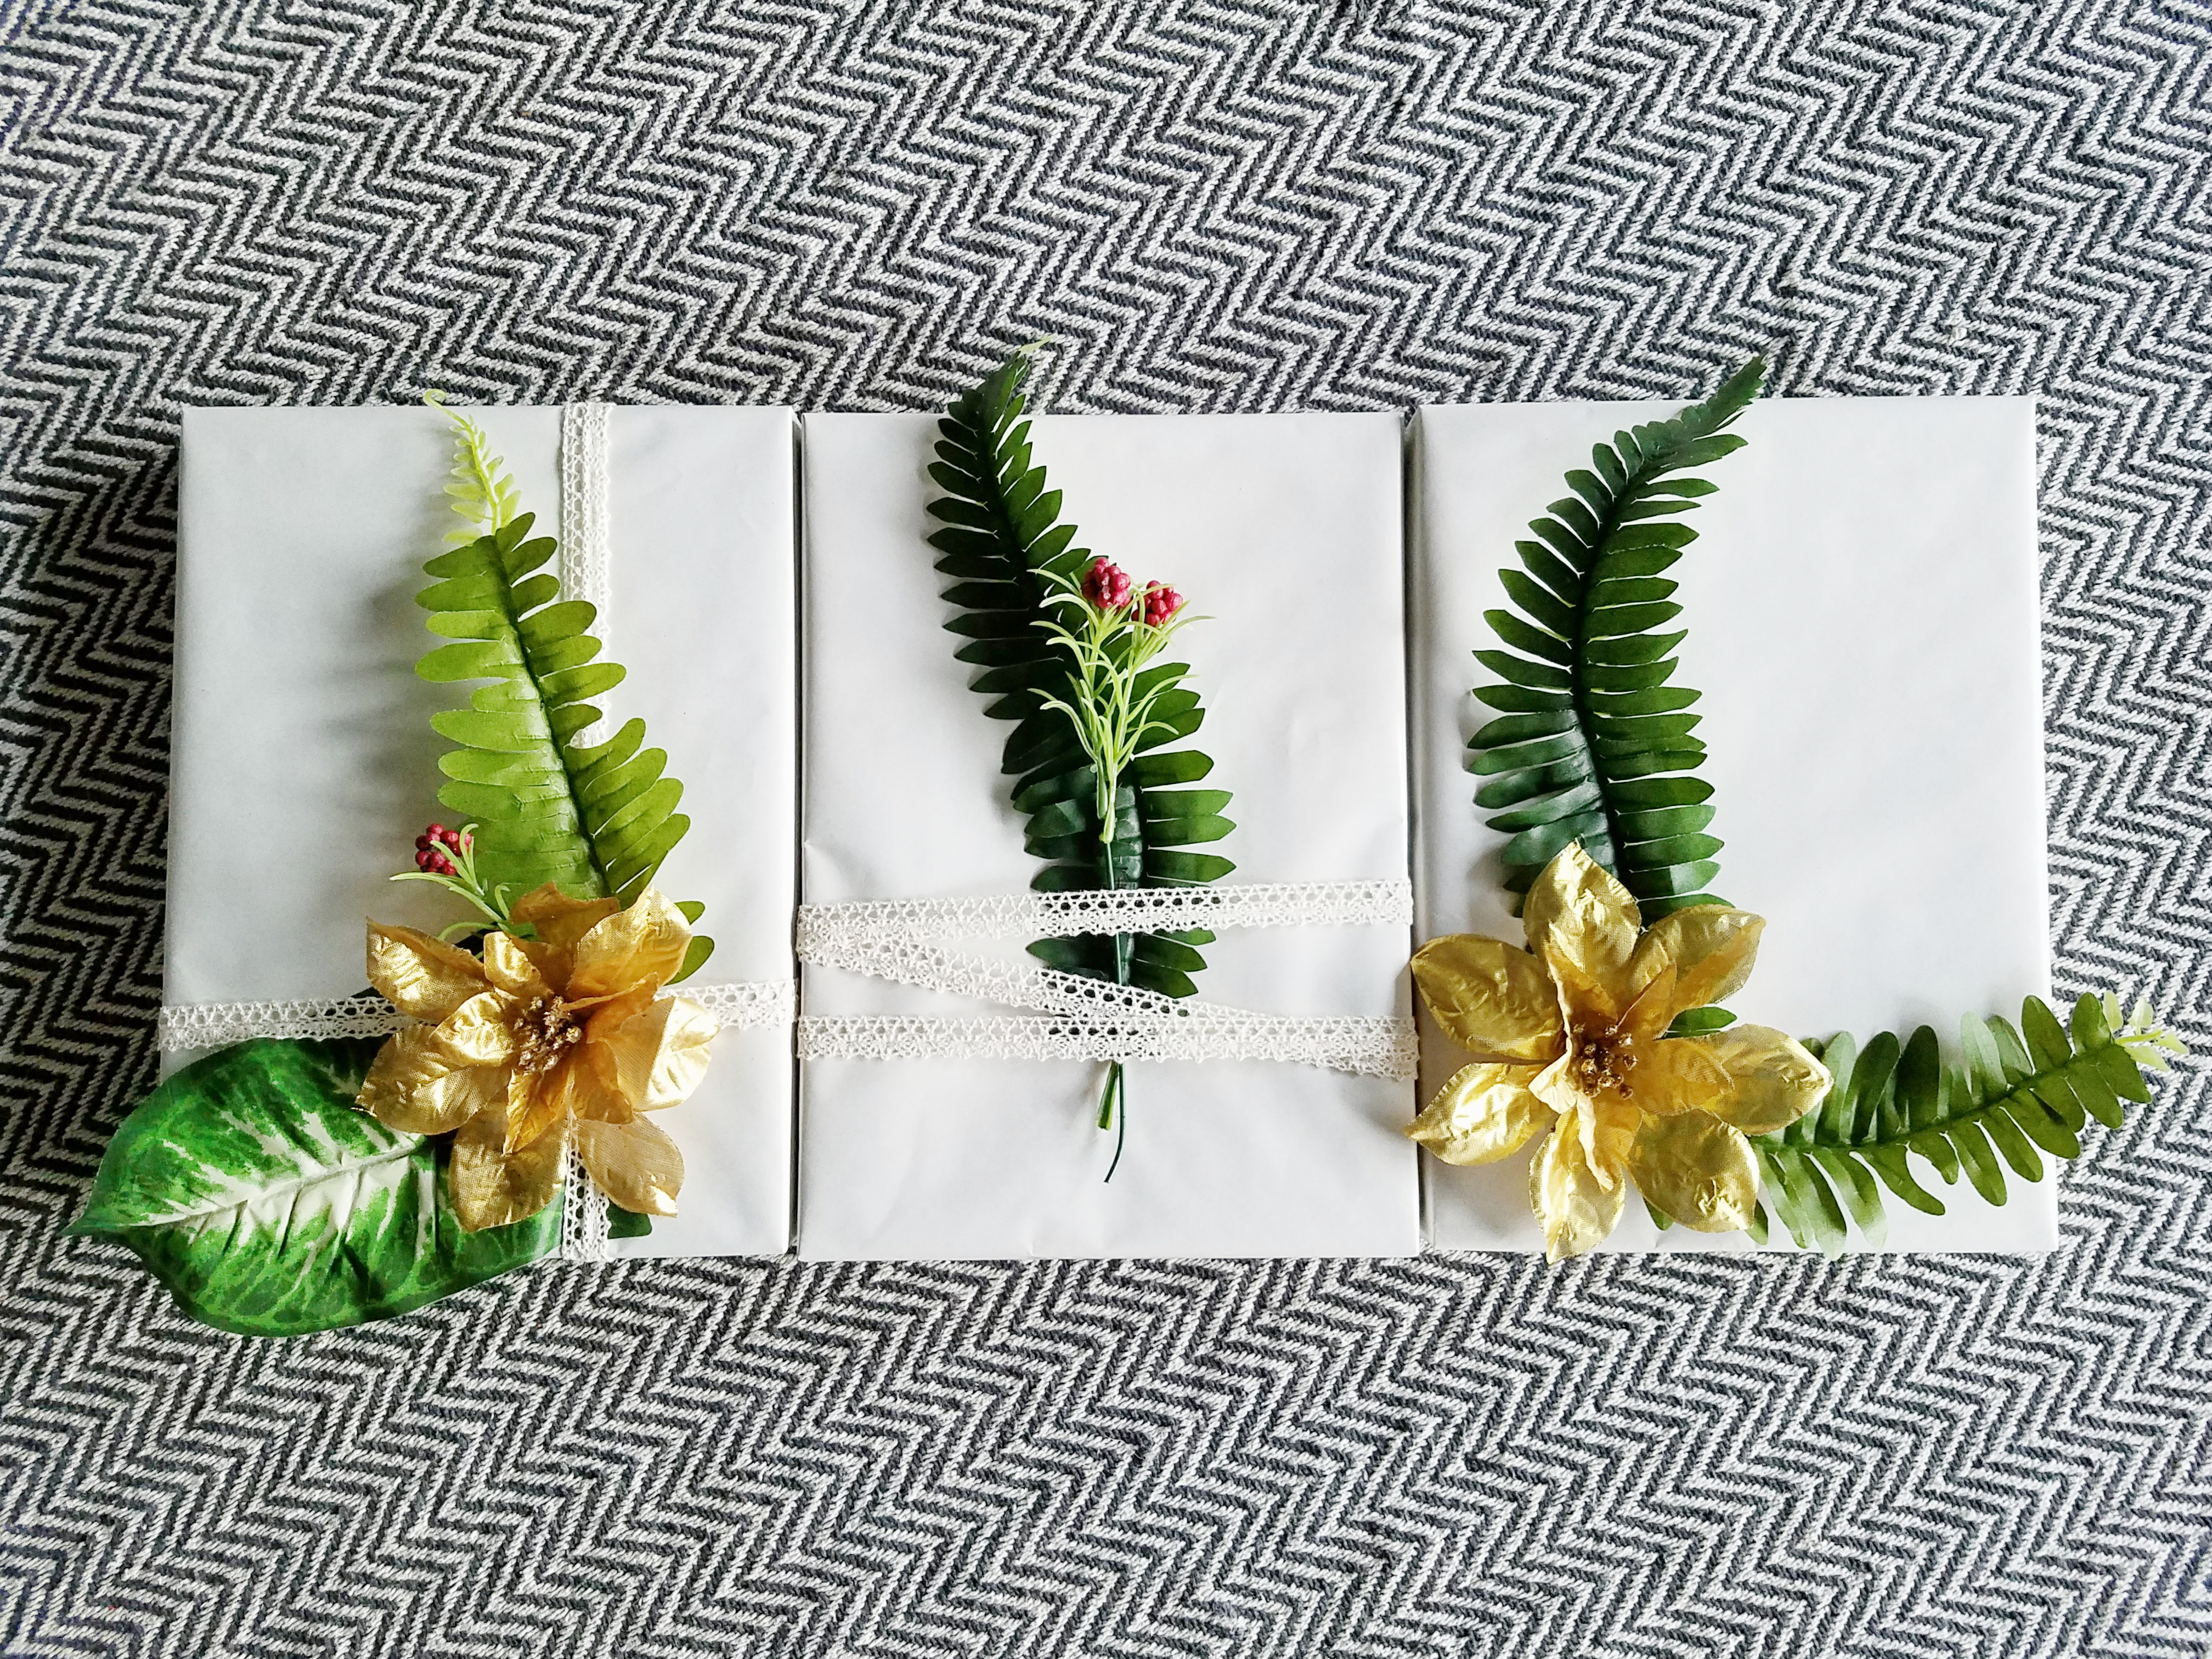 Dollar Store Budget Friendly Botanical Gift Wrapping Idea